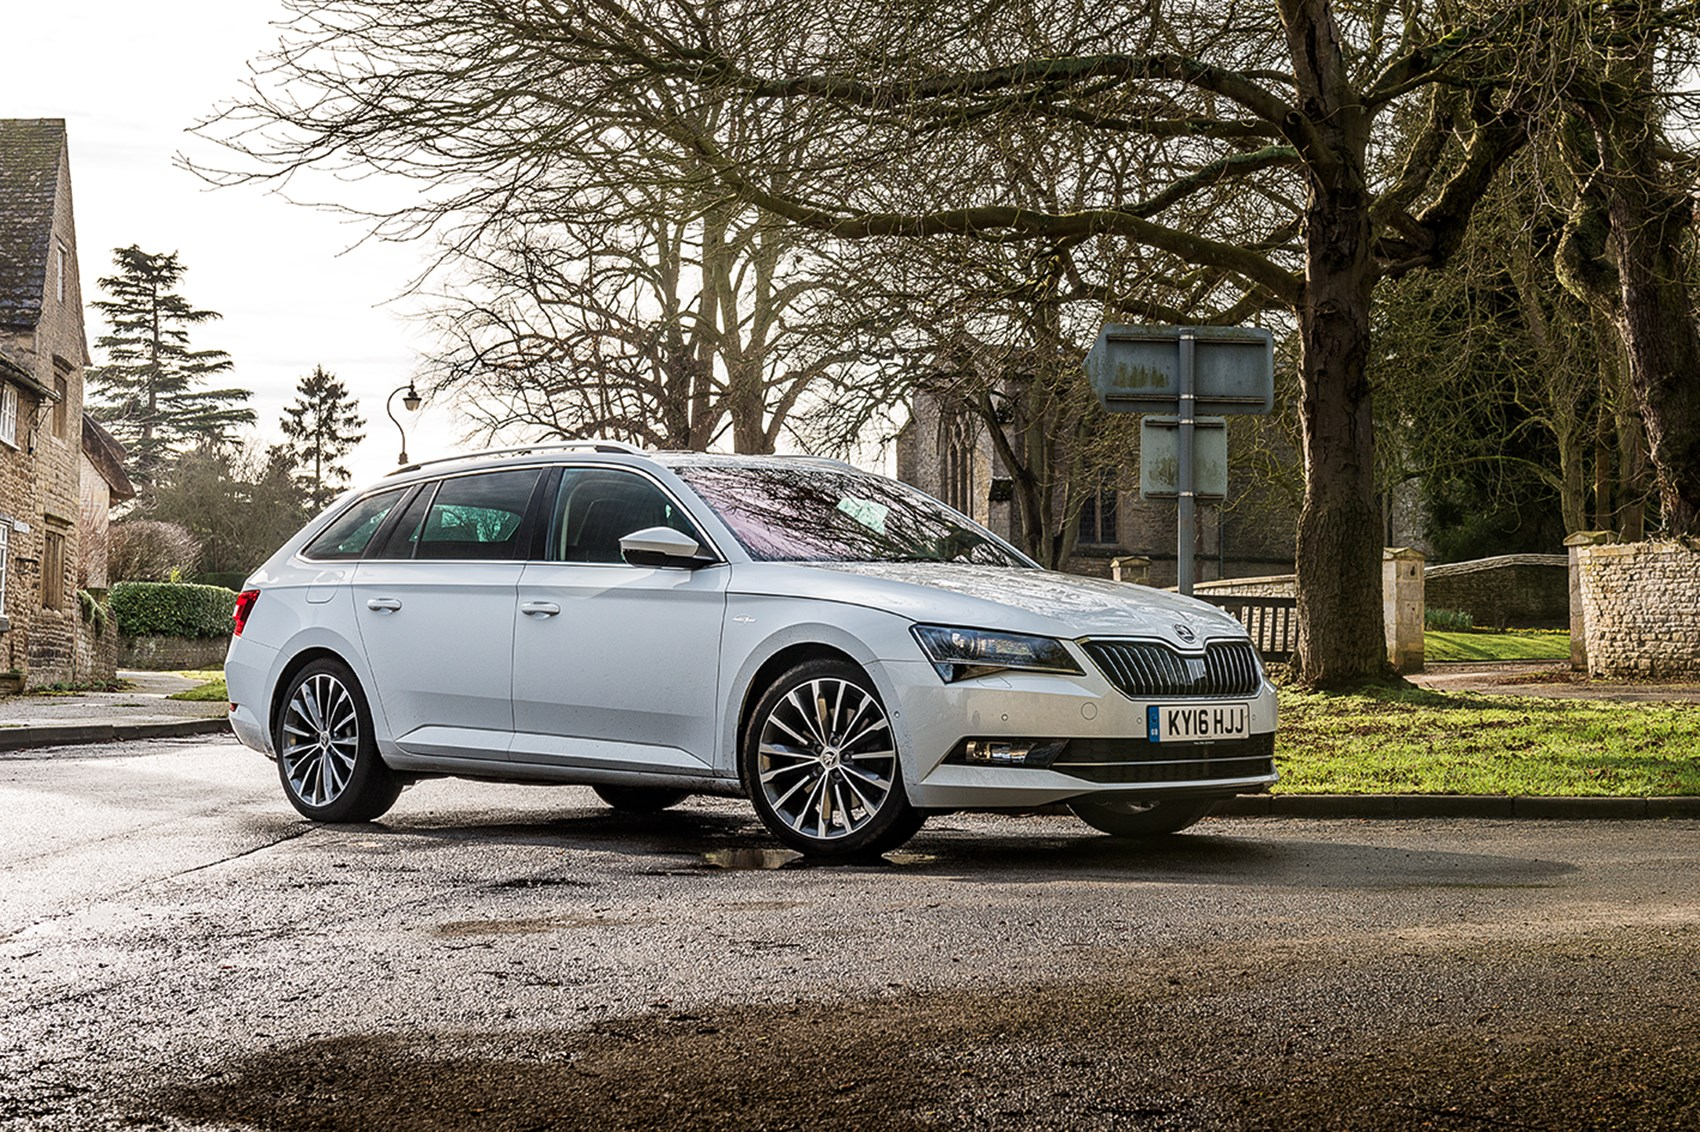 Skoda superb estate 1 4 tsi review autocar - Semi Bling Looks Shouldn T Distract From The Superb S Fundamental Soundness